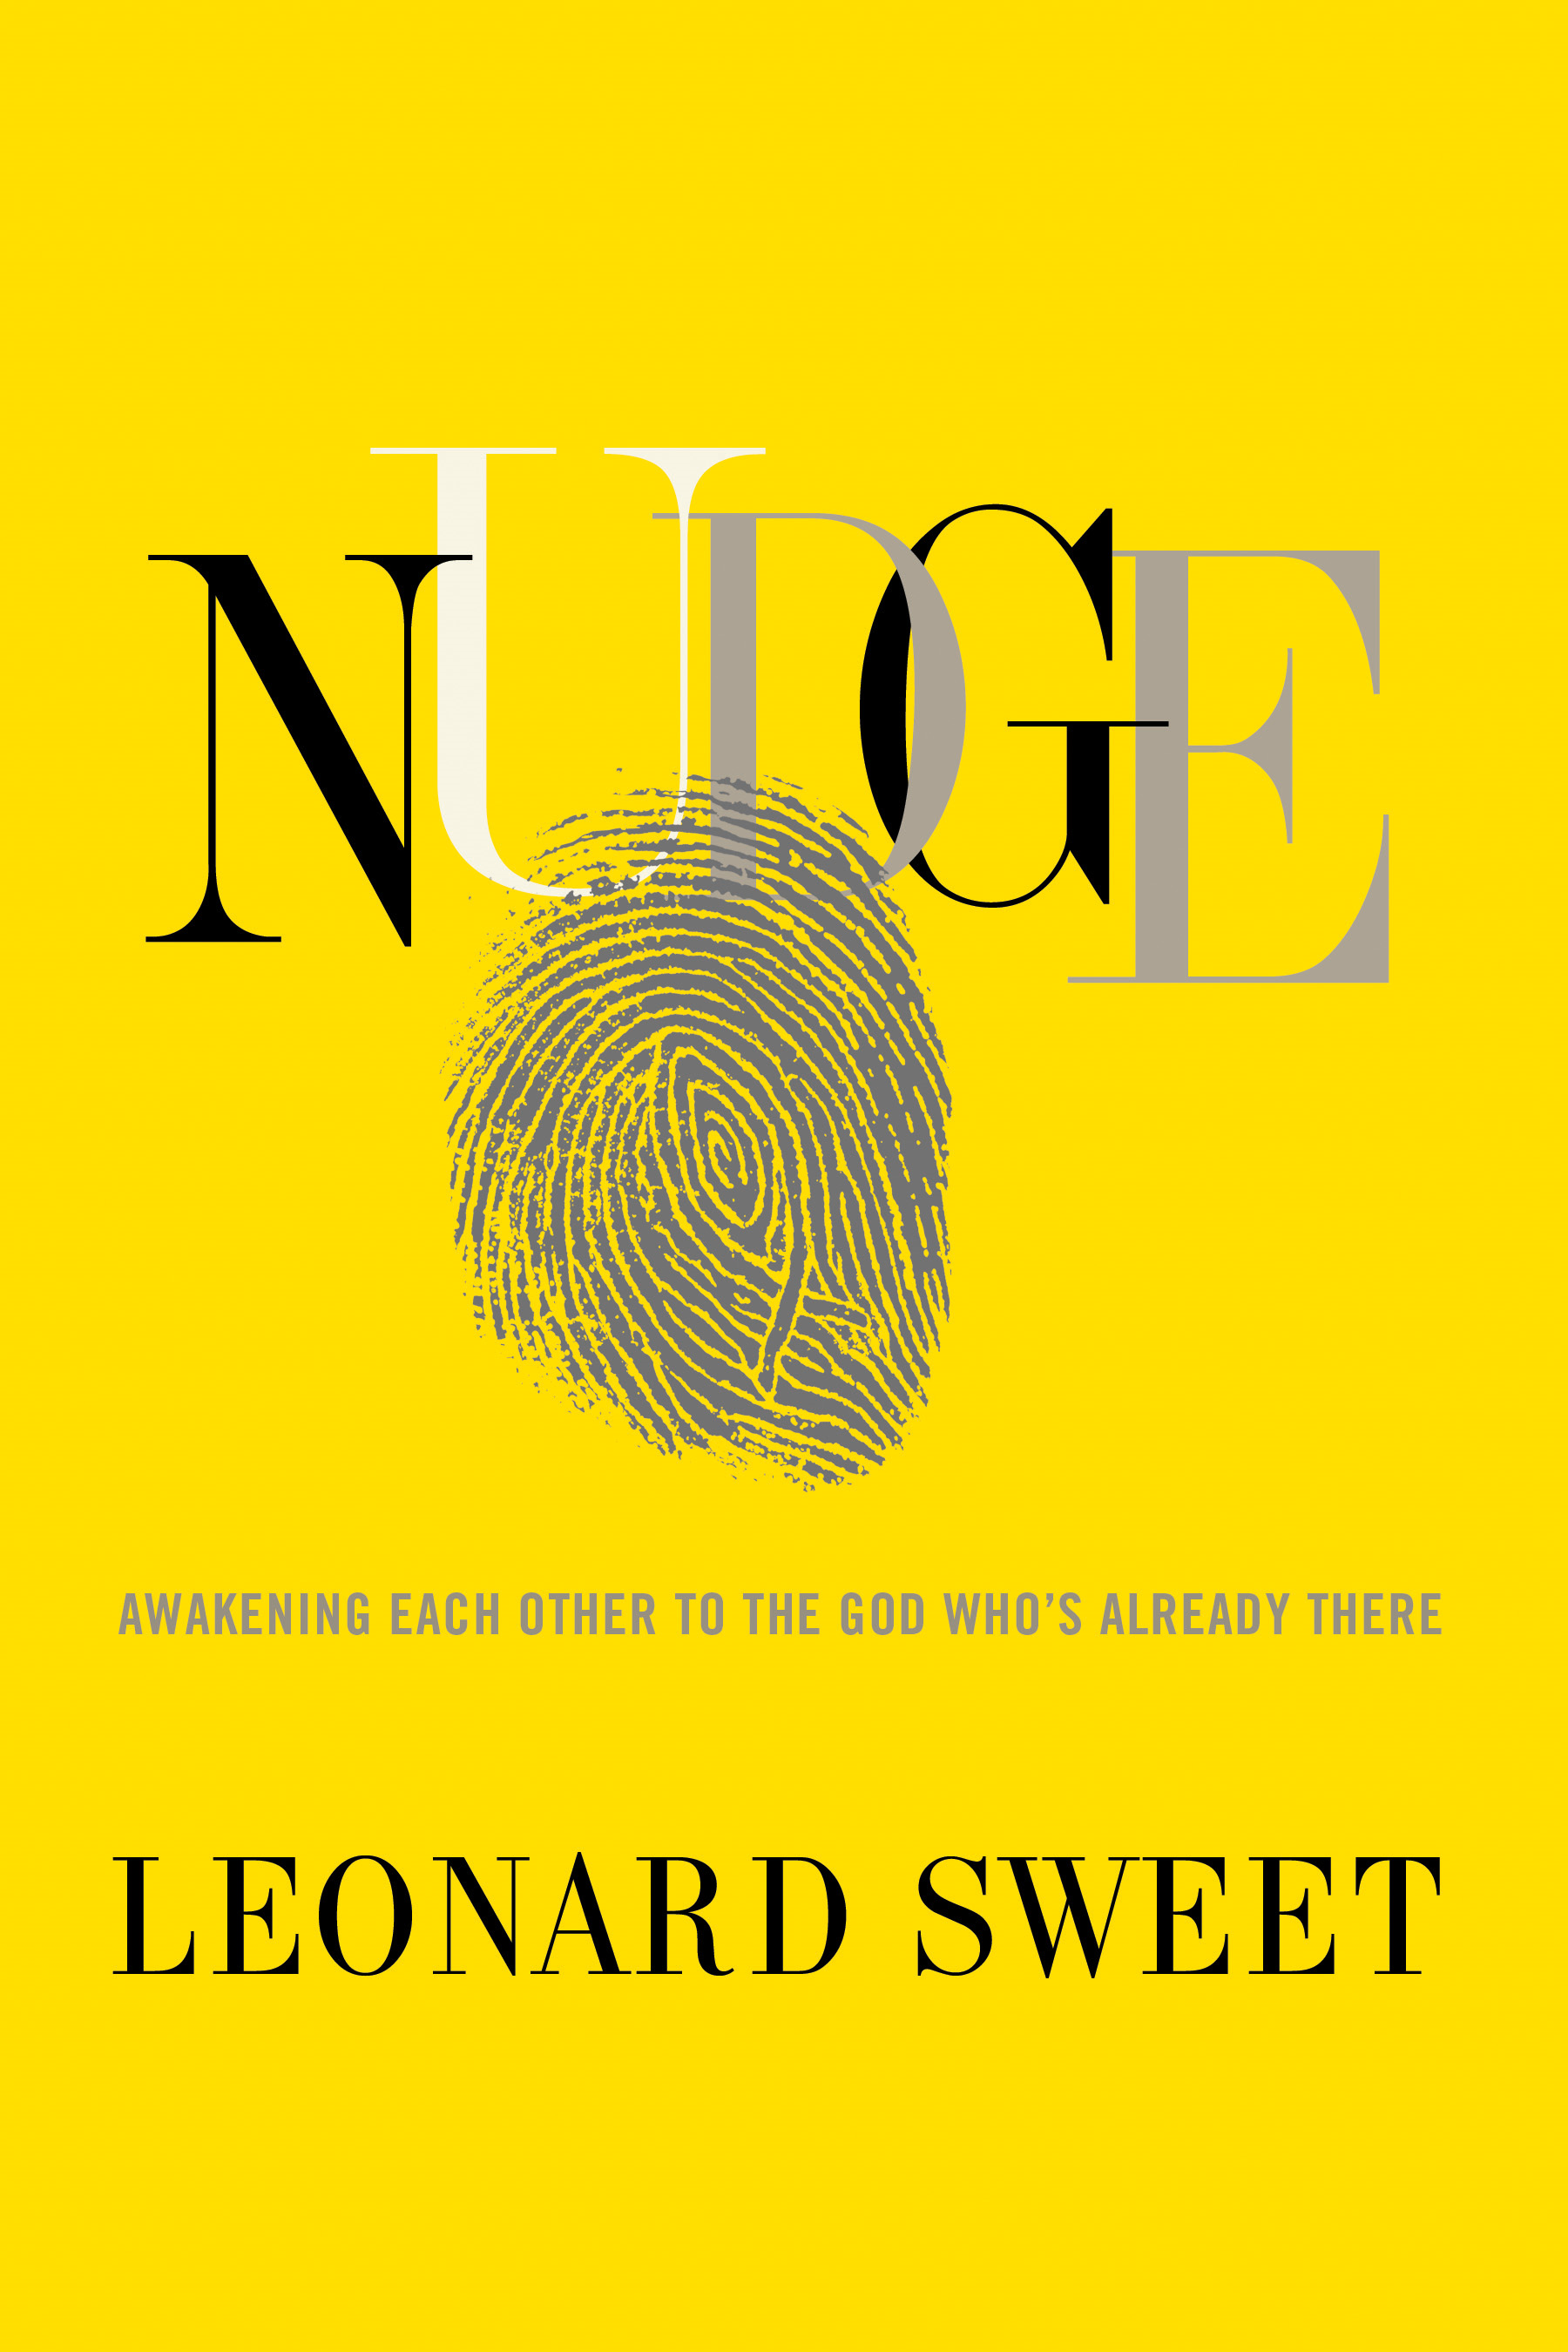 Nudge: Awakening Each Other to the God Who's Already There By: Leonard Sweet, Ph.D